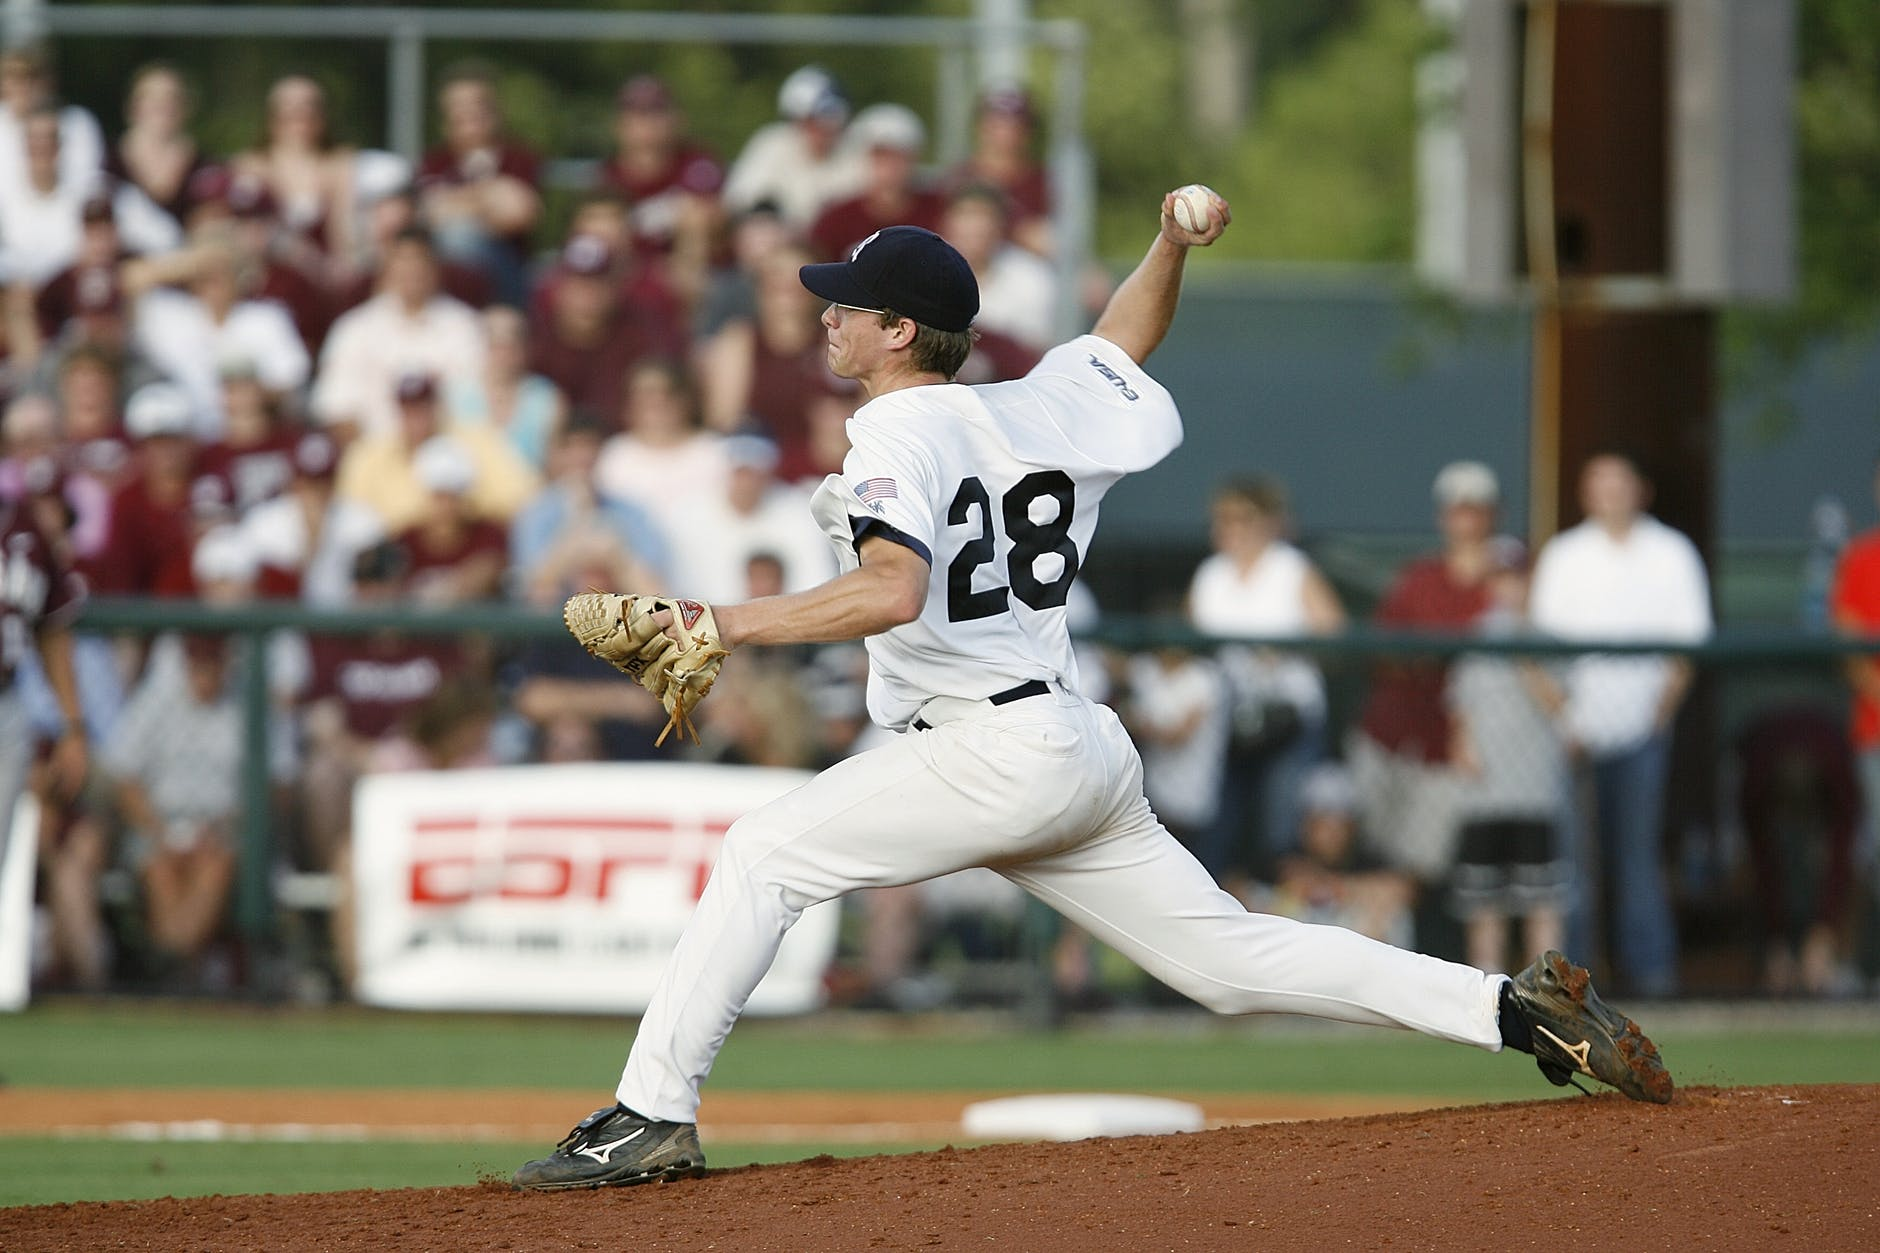 baseball player on field photo - 5 Tips to Find Good Underdogs in Baseball to Bet On